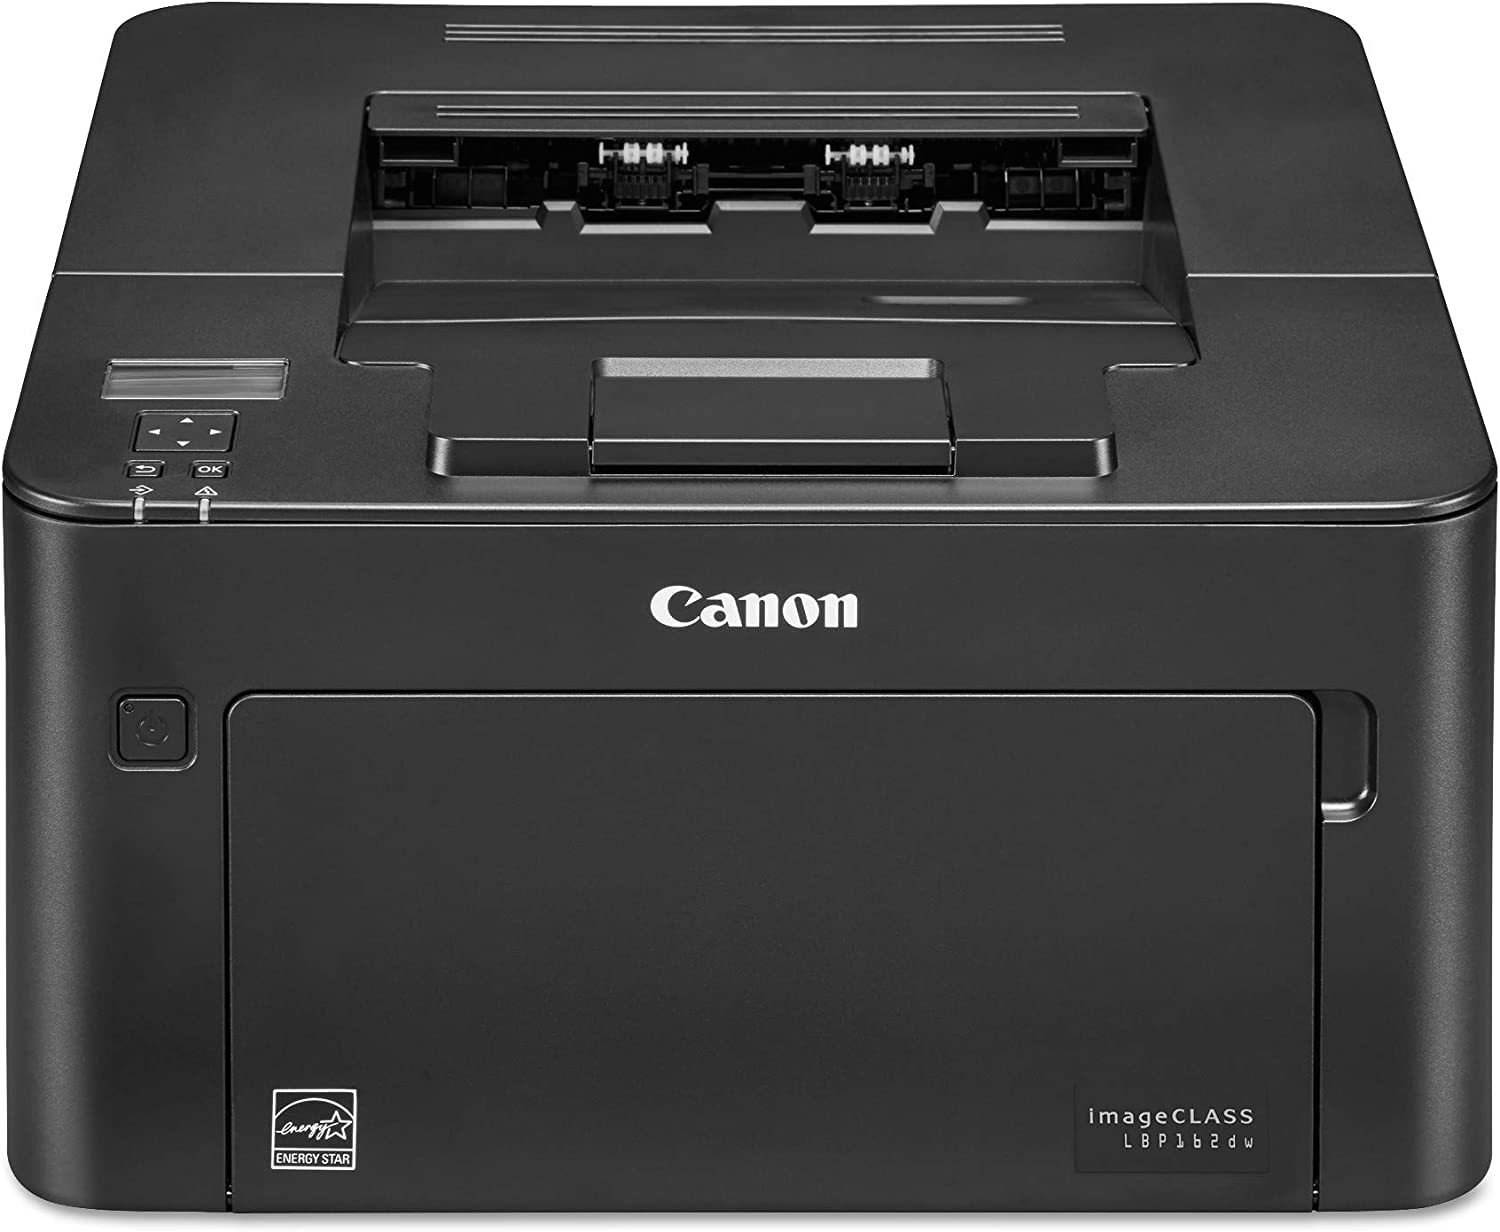 Canon imageCLASS LBP162dw Wireless Monochrome Duplex Laser Printer w//Toner